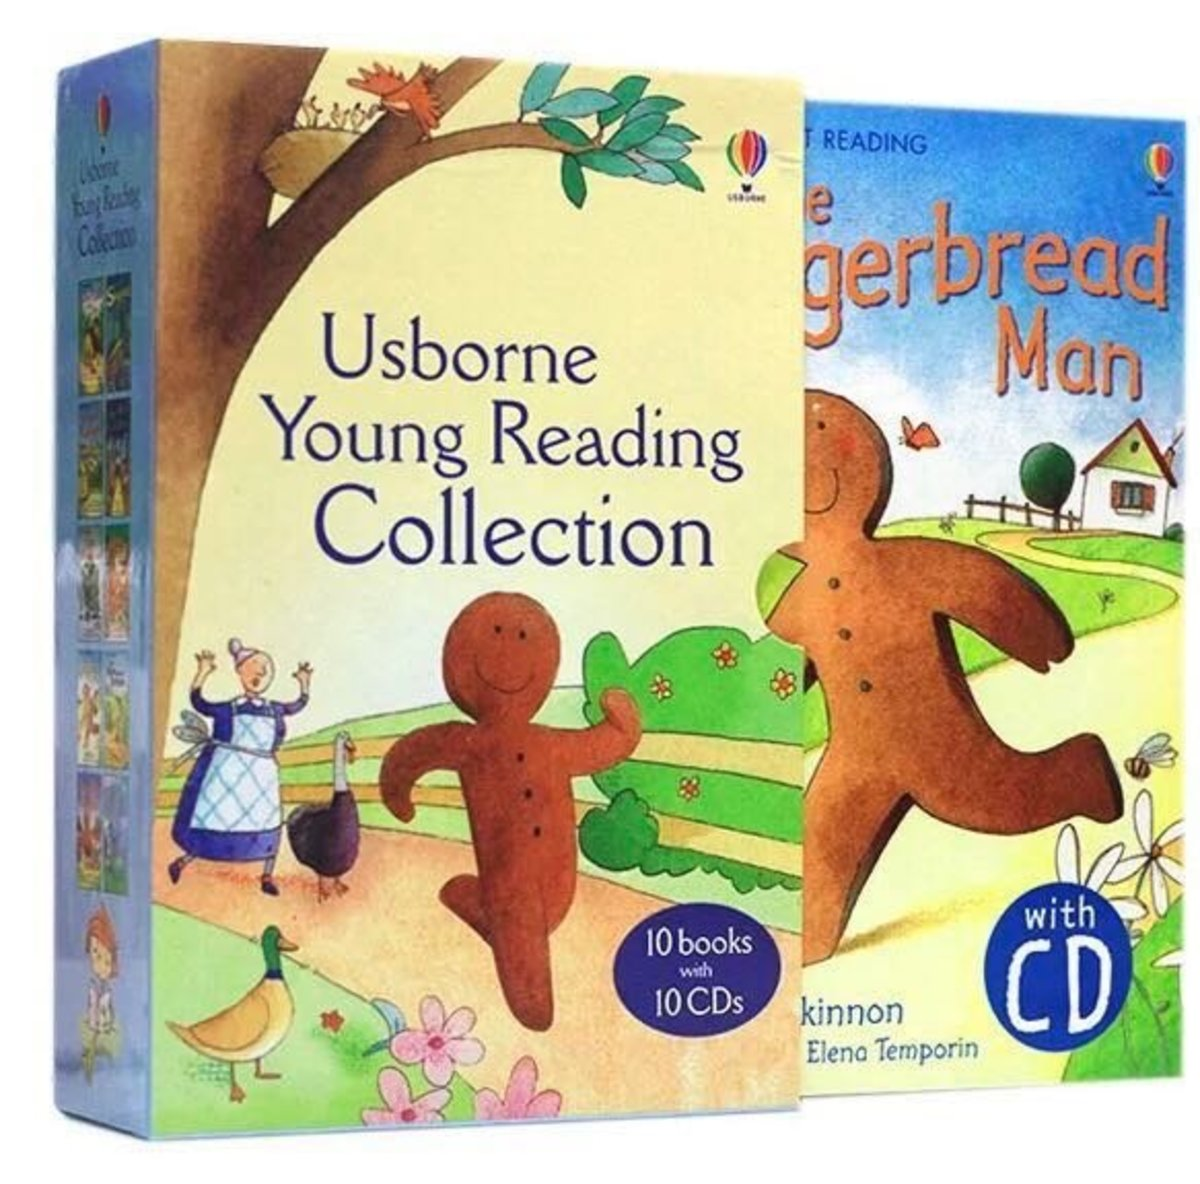 Young Reading Collection Boxset (10 books and 10 CDs)|Parallel Imports